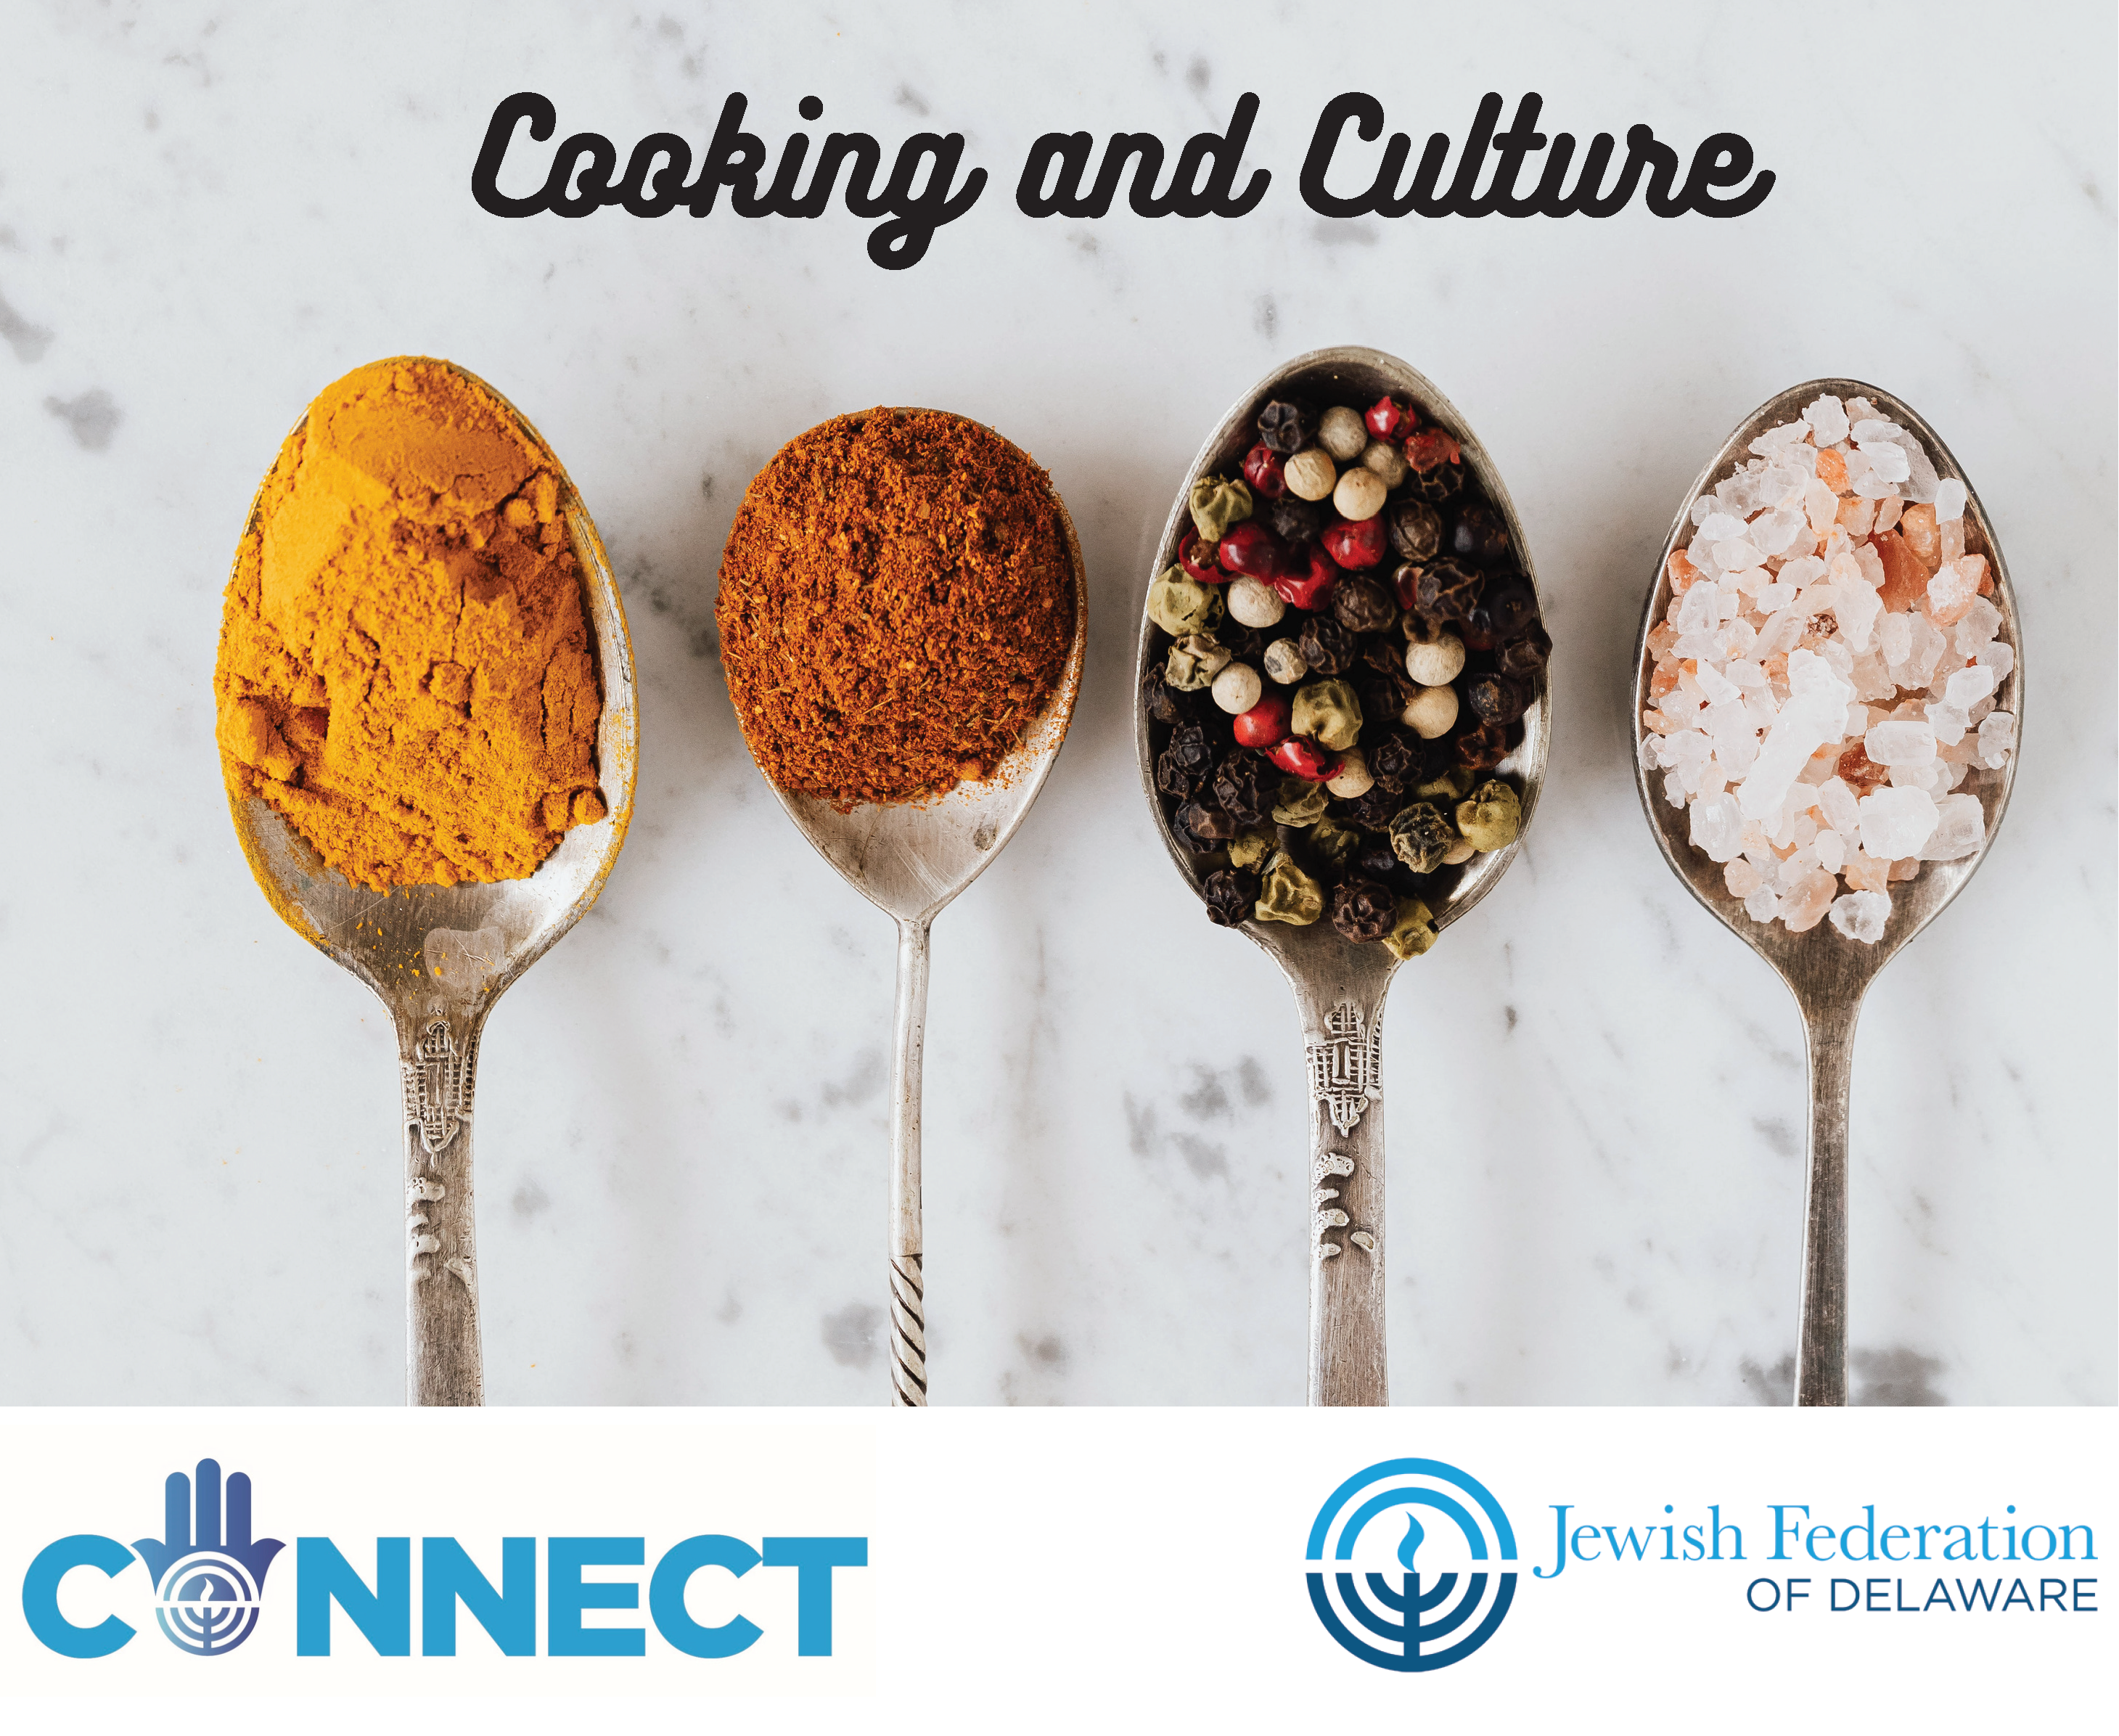 CONNECT - Cooking and Culture Part 2